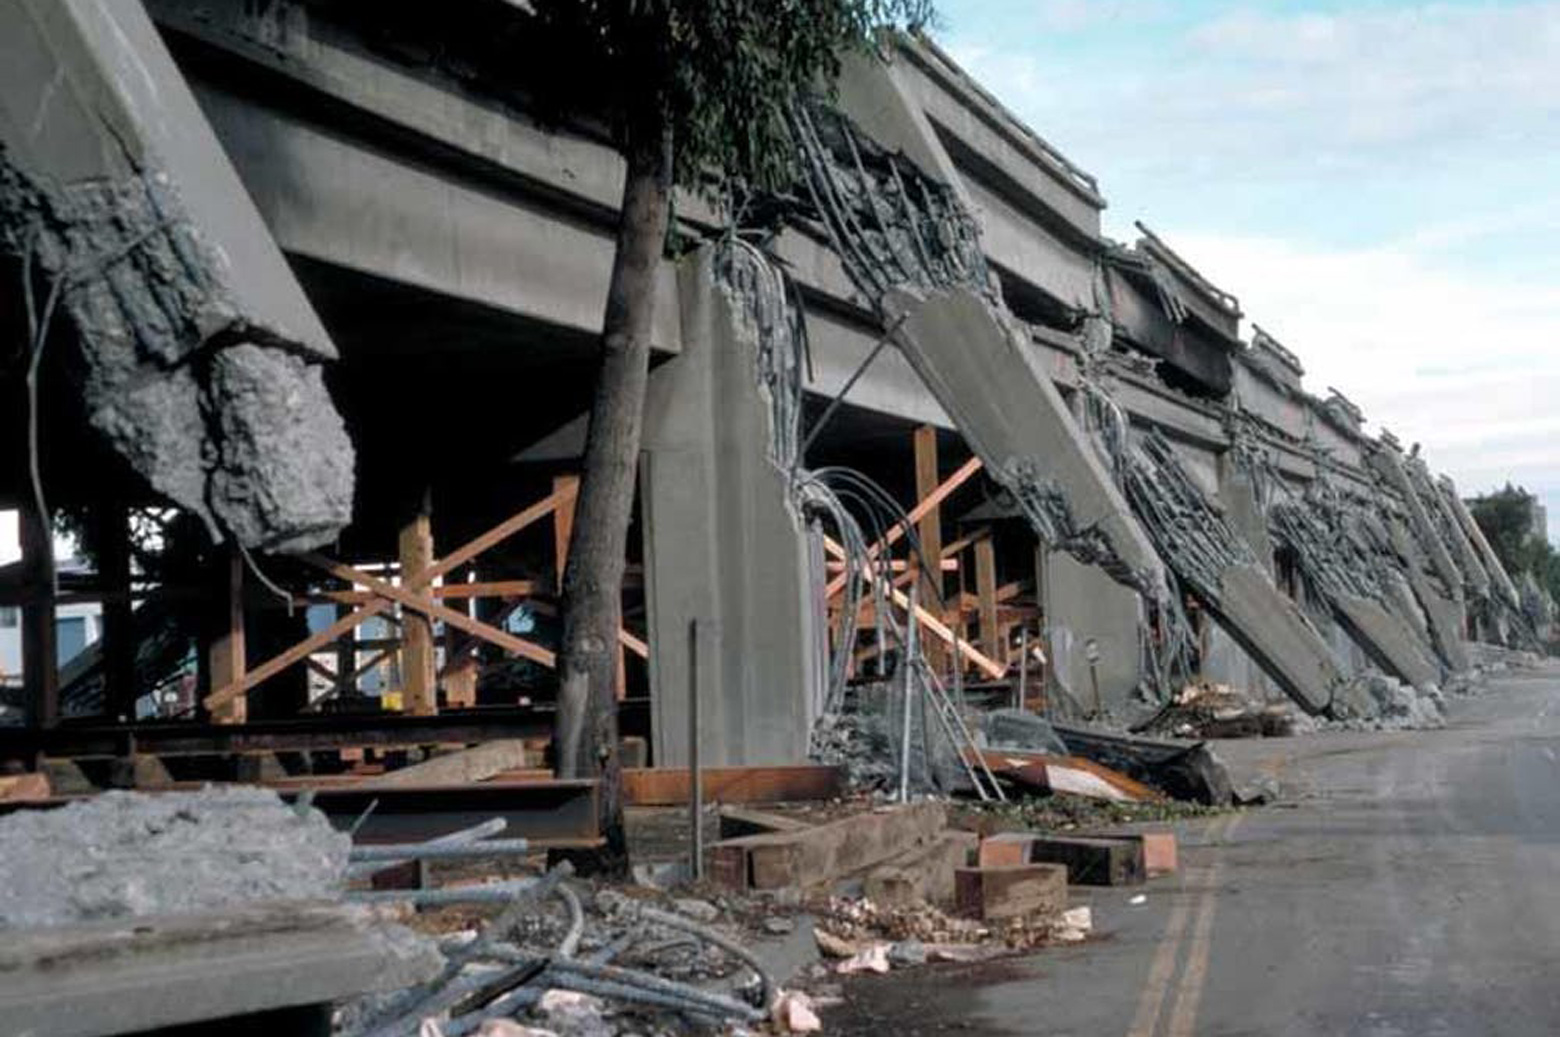 Wreckage from the Loma Prieta earthquake in Oakland California